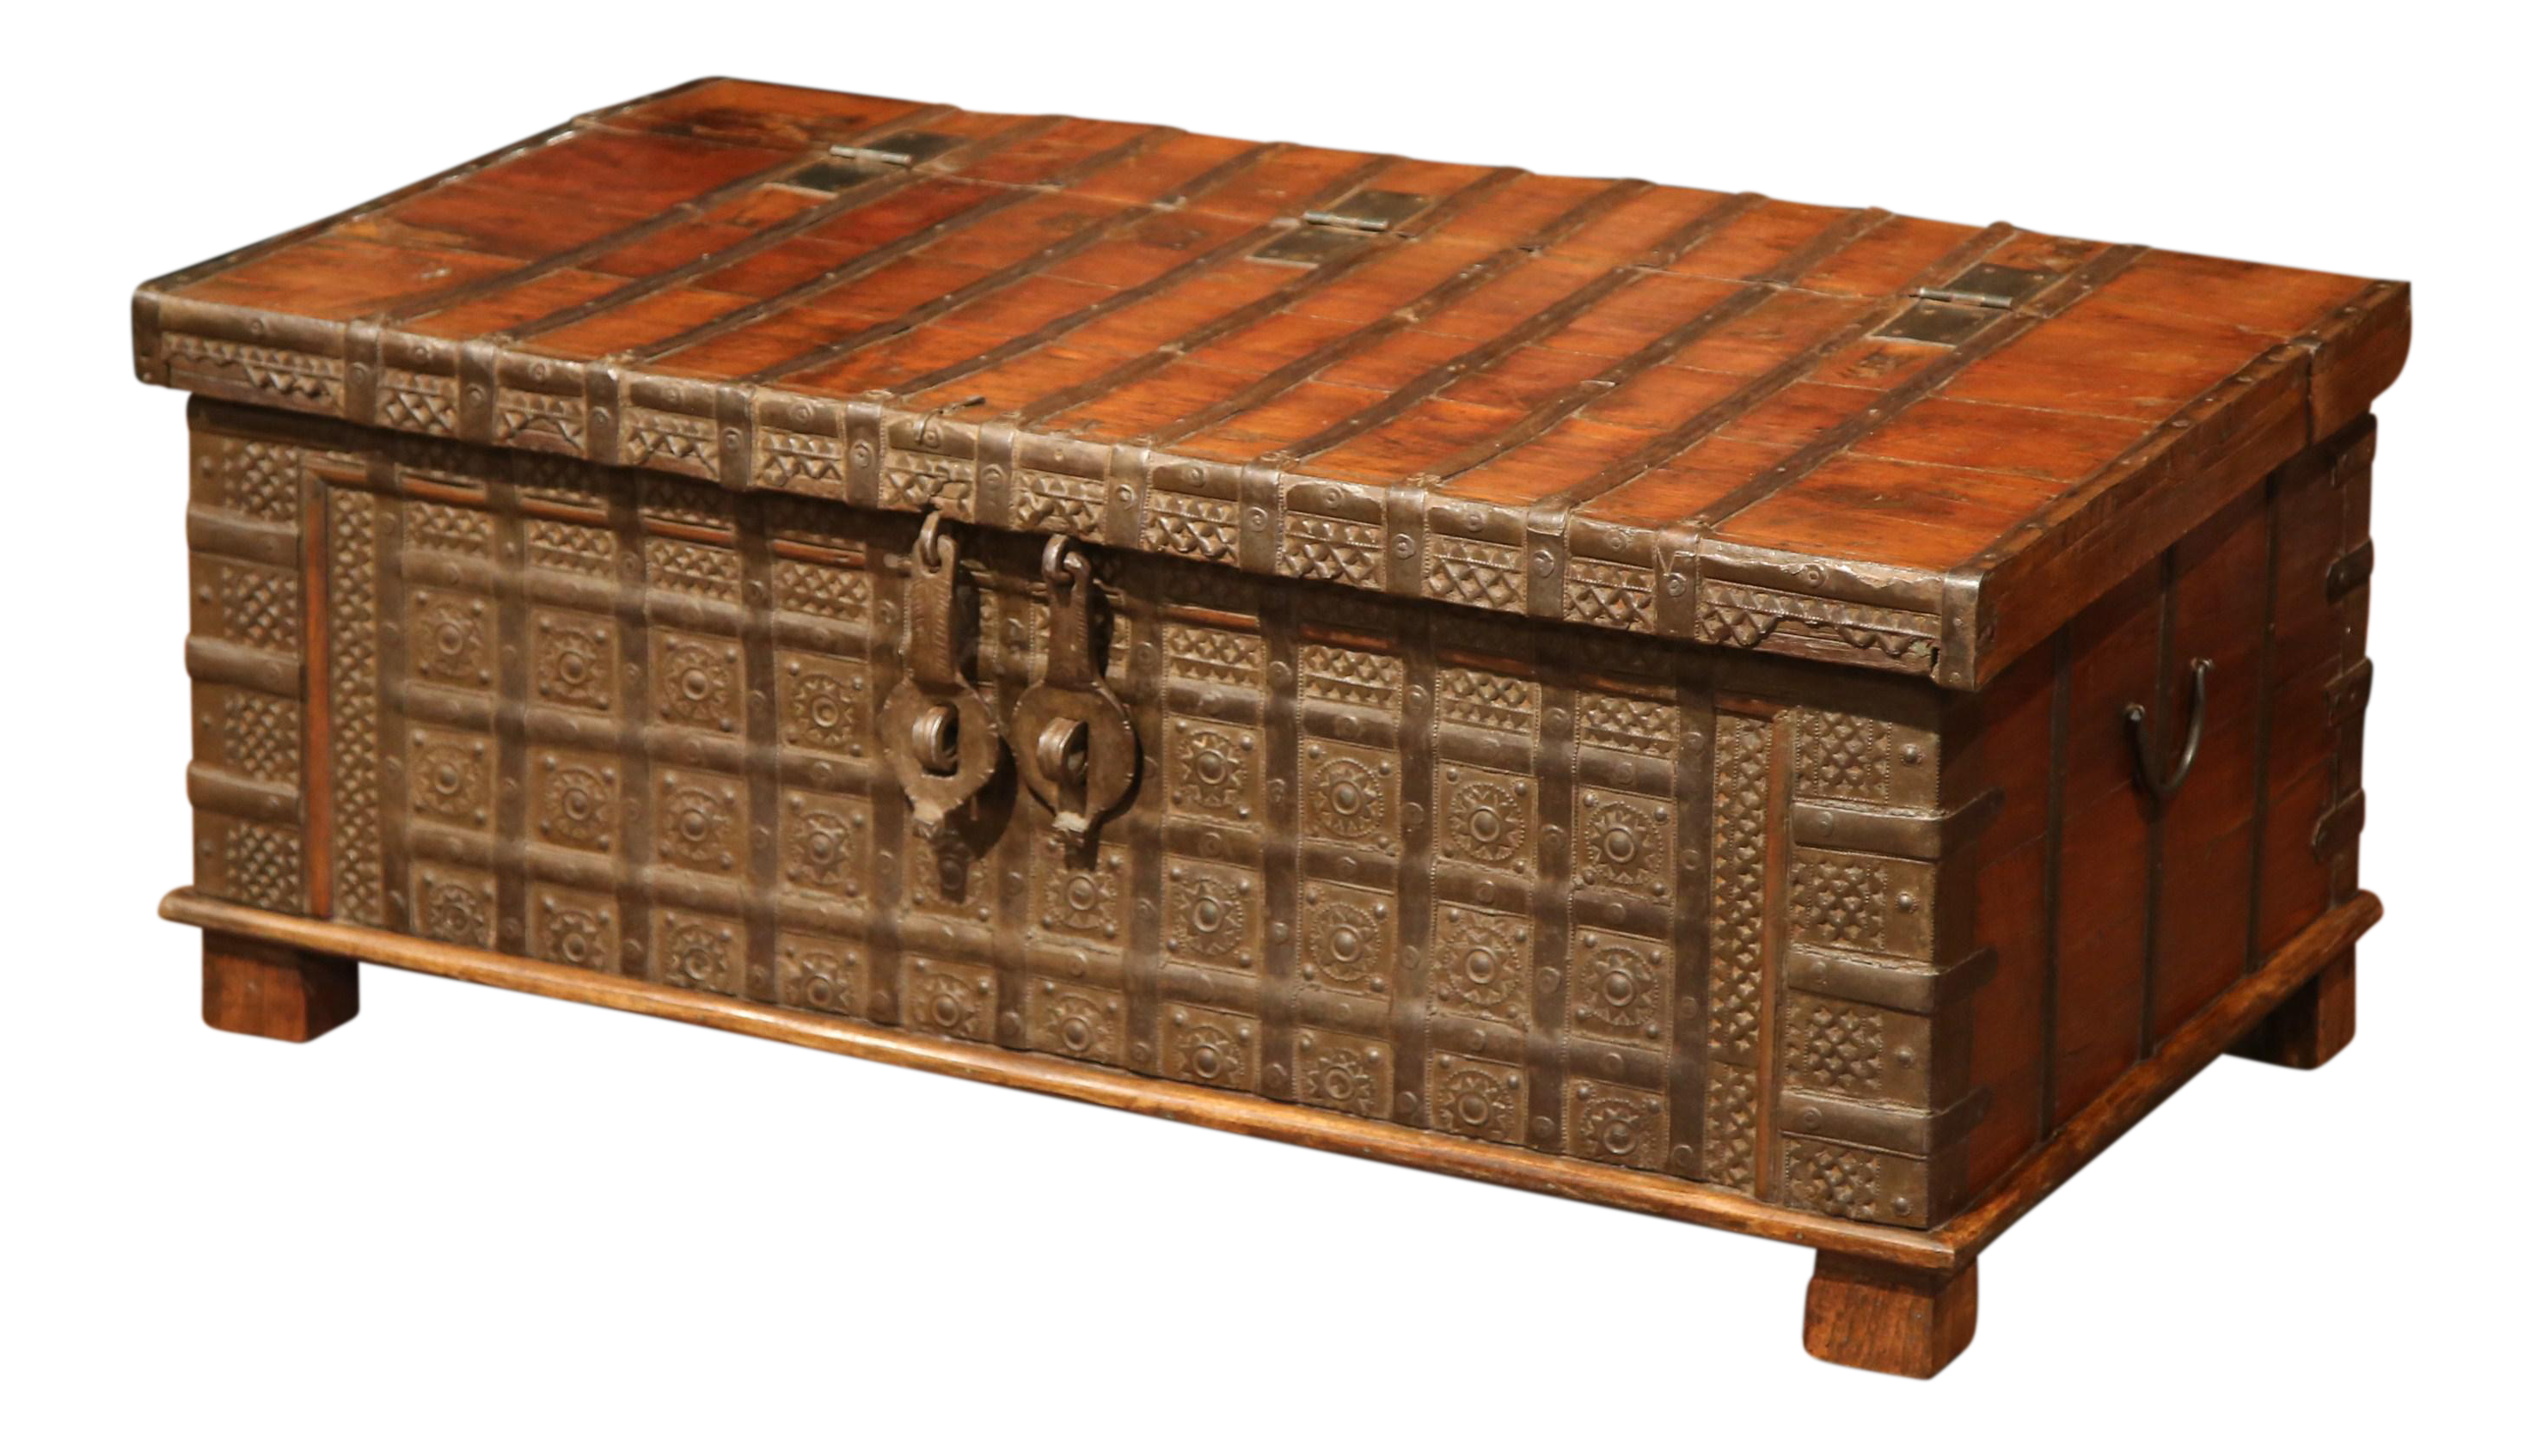 19th Century English Carved Chestnut Trunk Coffee Table With Heavy Hardware